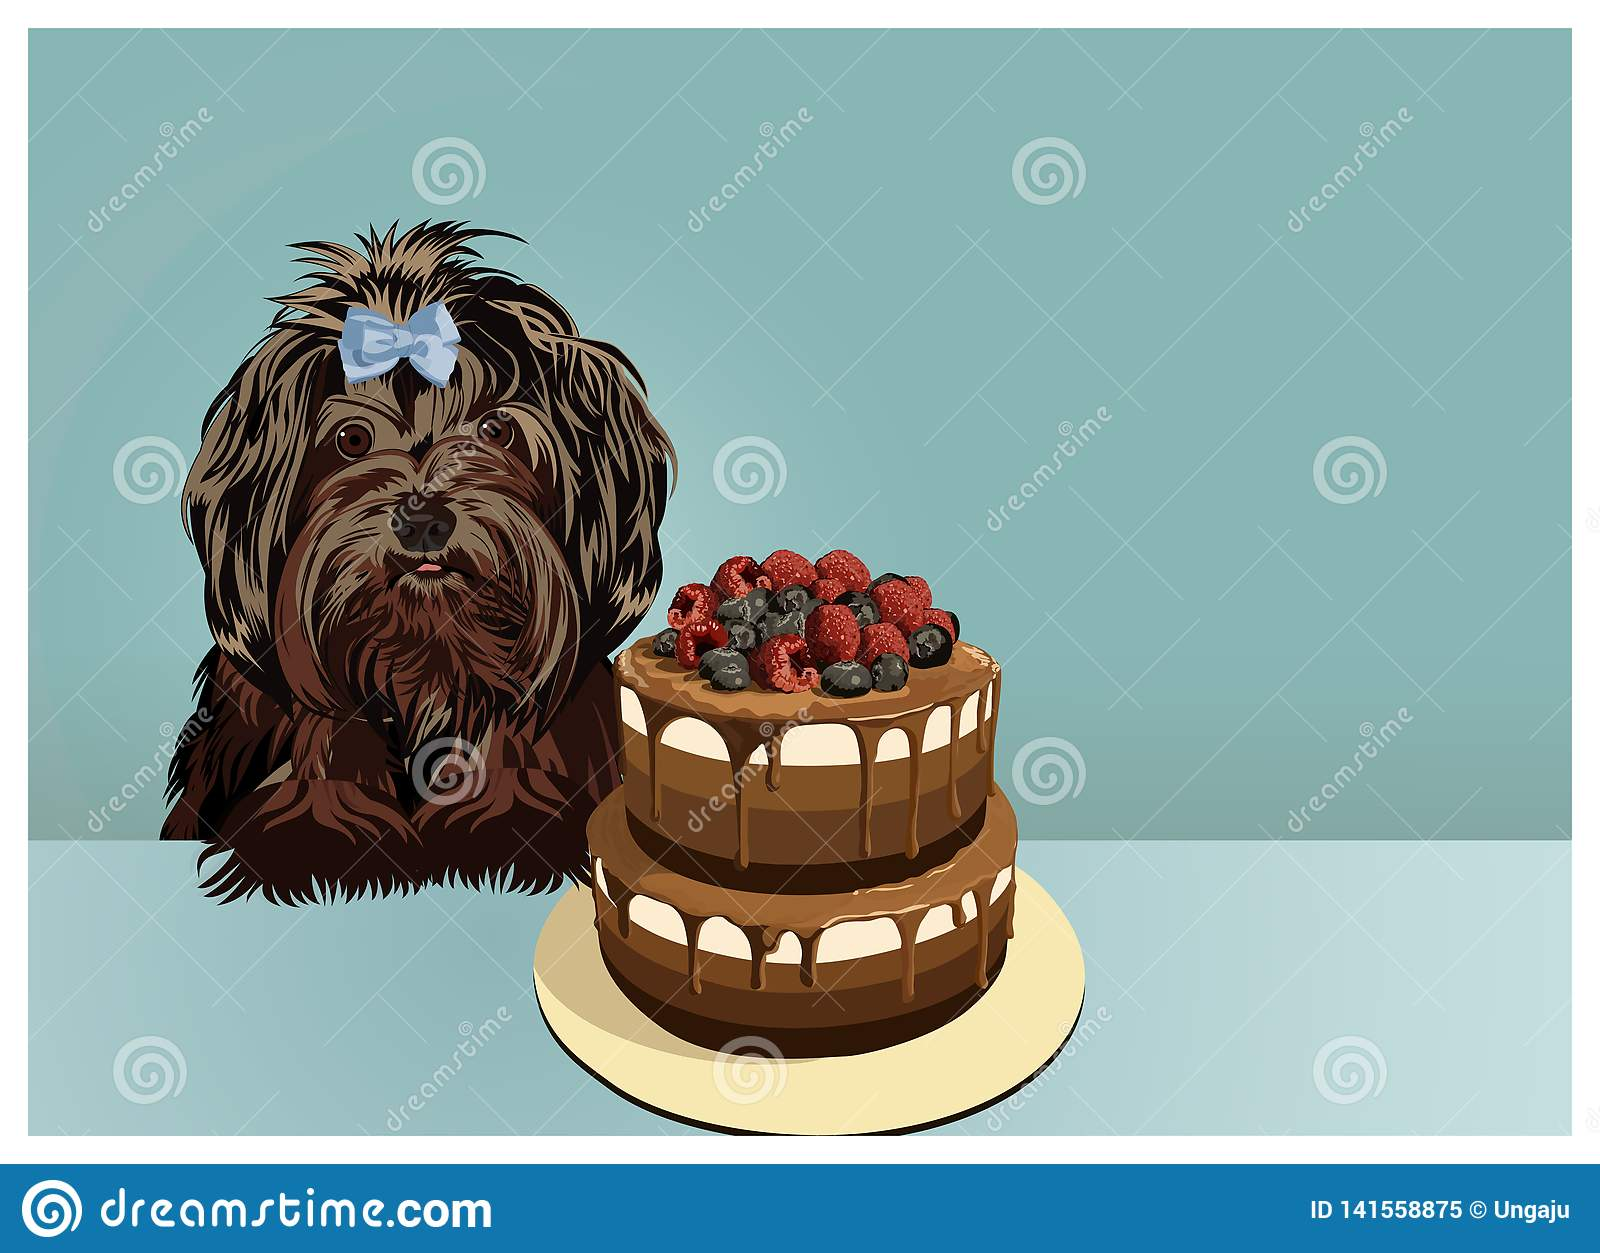 Little black lap dog and cake. Happy birthday greeting card.